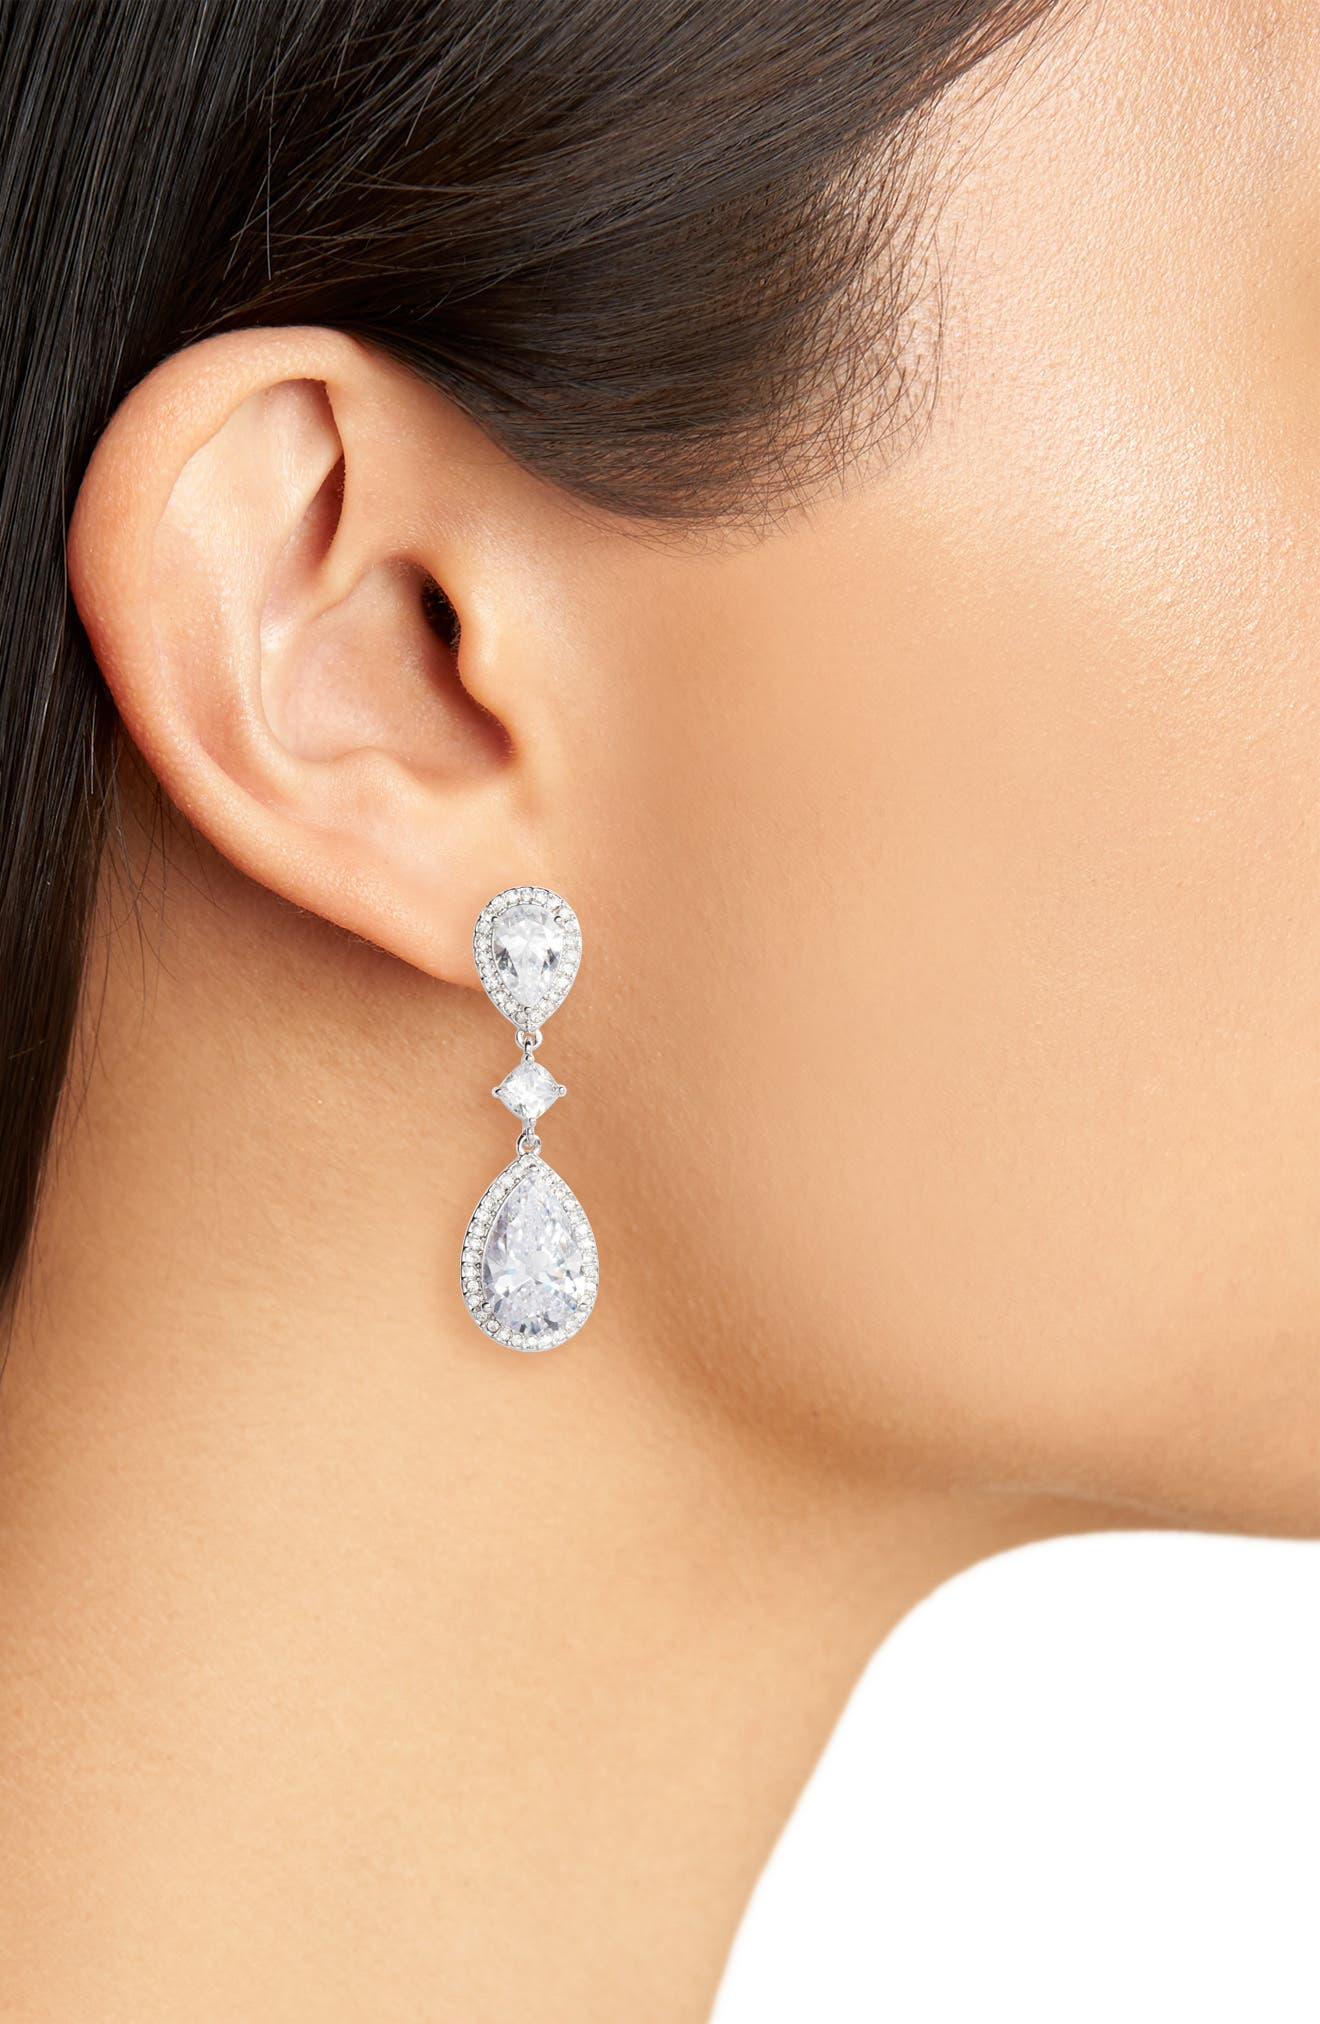 Cubic Zirconia Drop Earrings,                             Alternate thumbnail 2, color,                             SILVER